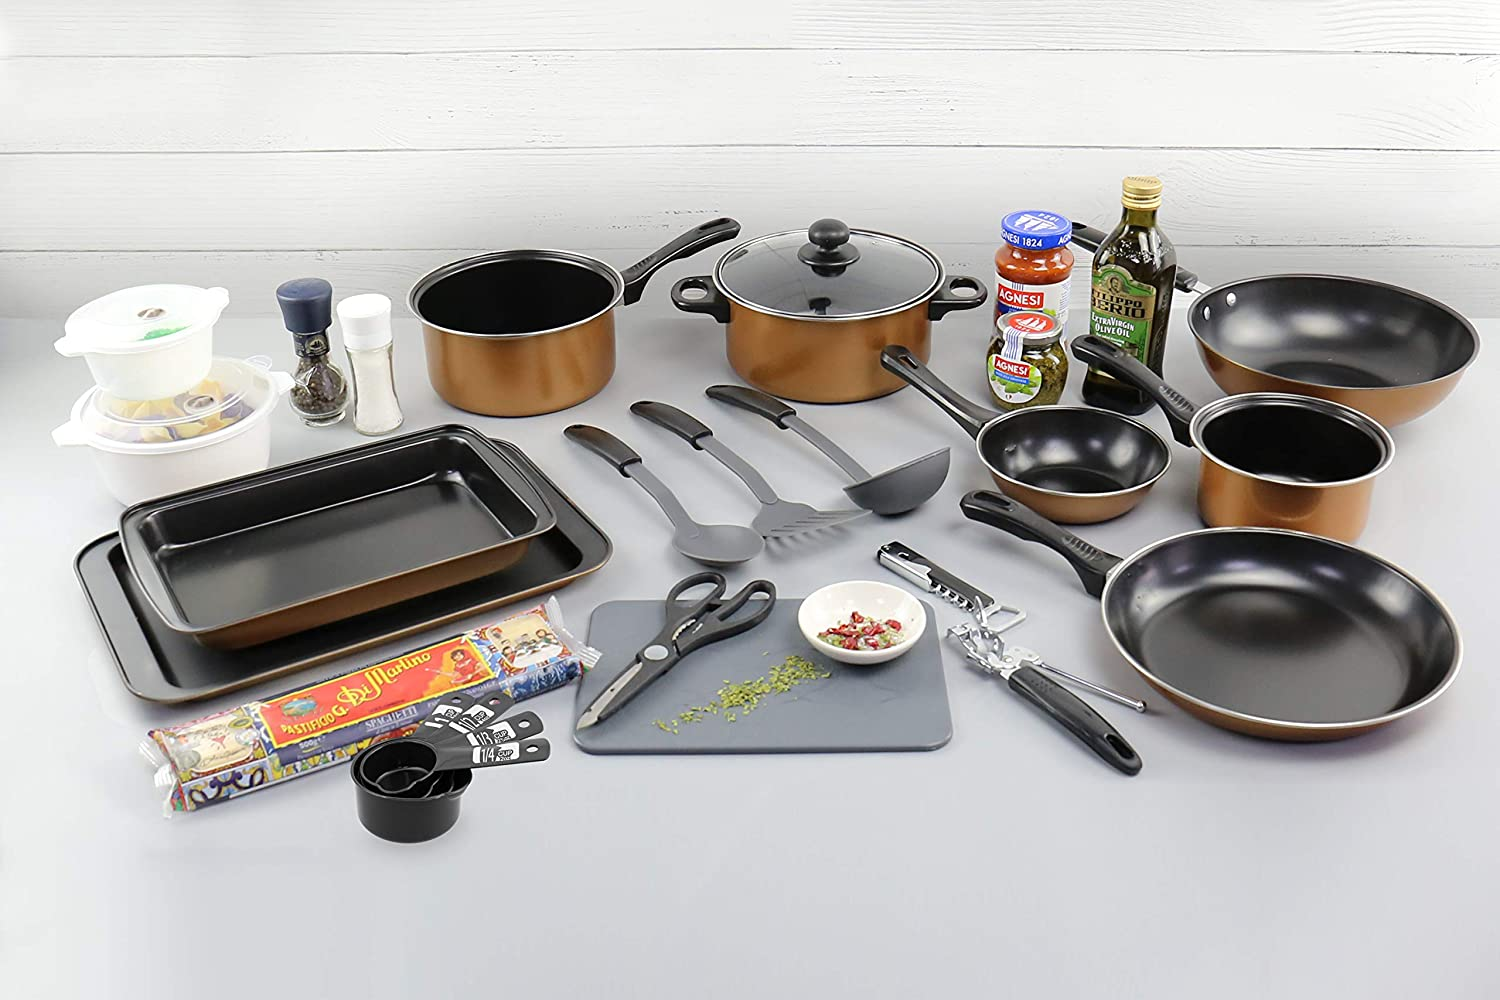 URBN-CHEF 21pc Kitchen All-in-One Starter Pack Copper Style EGT